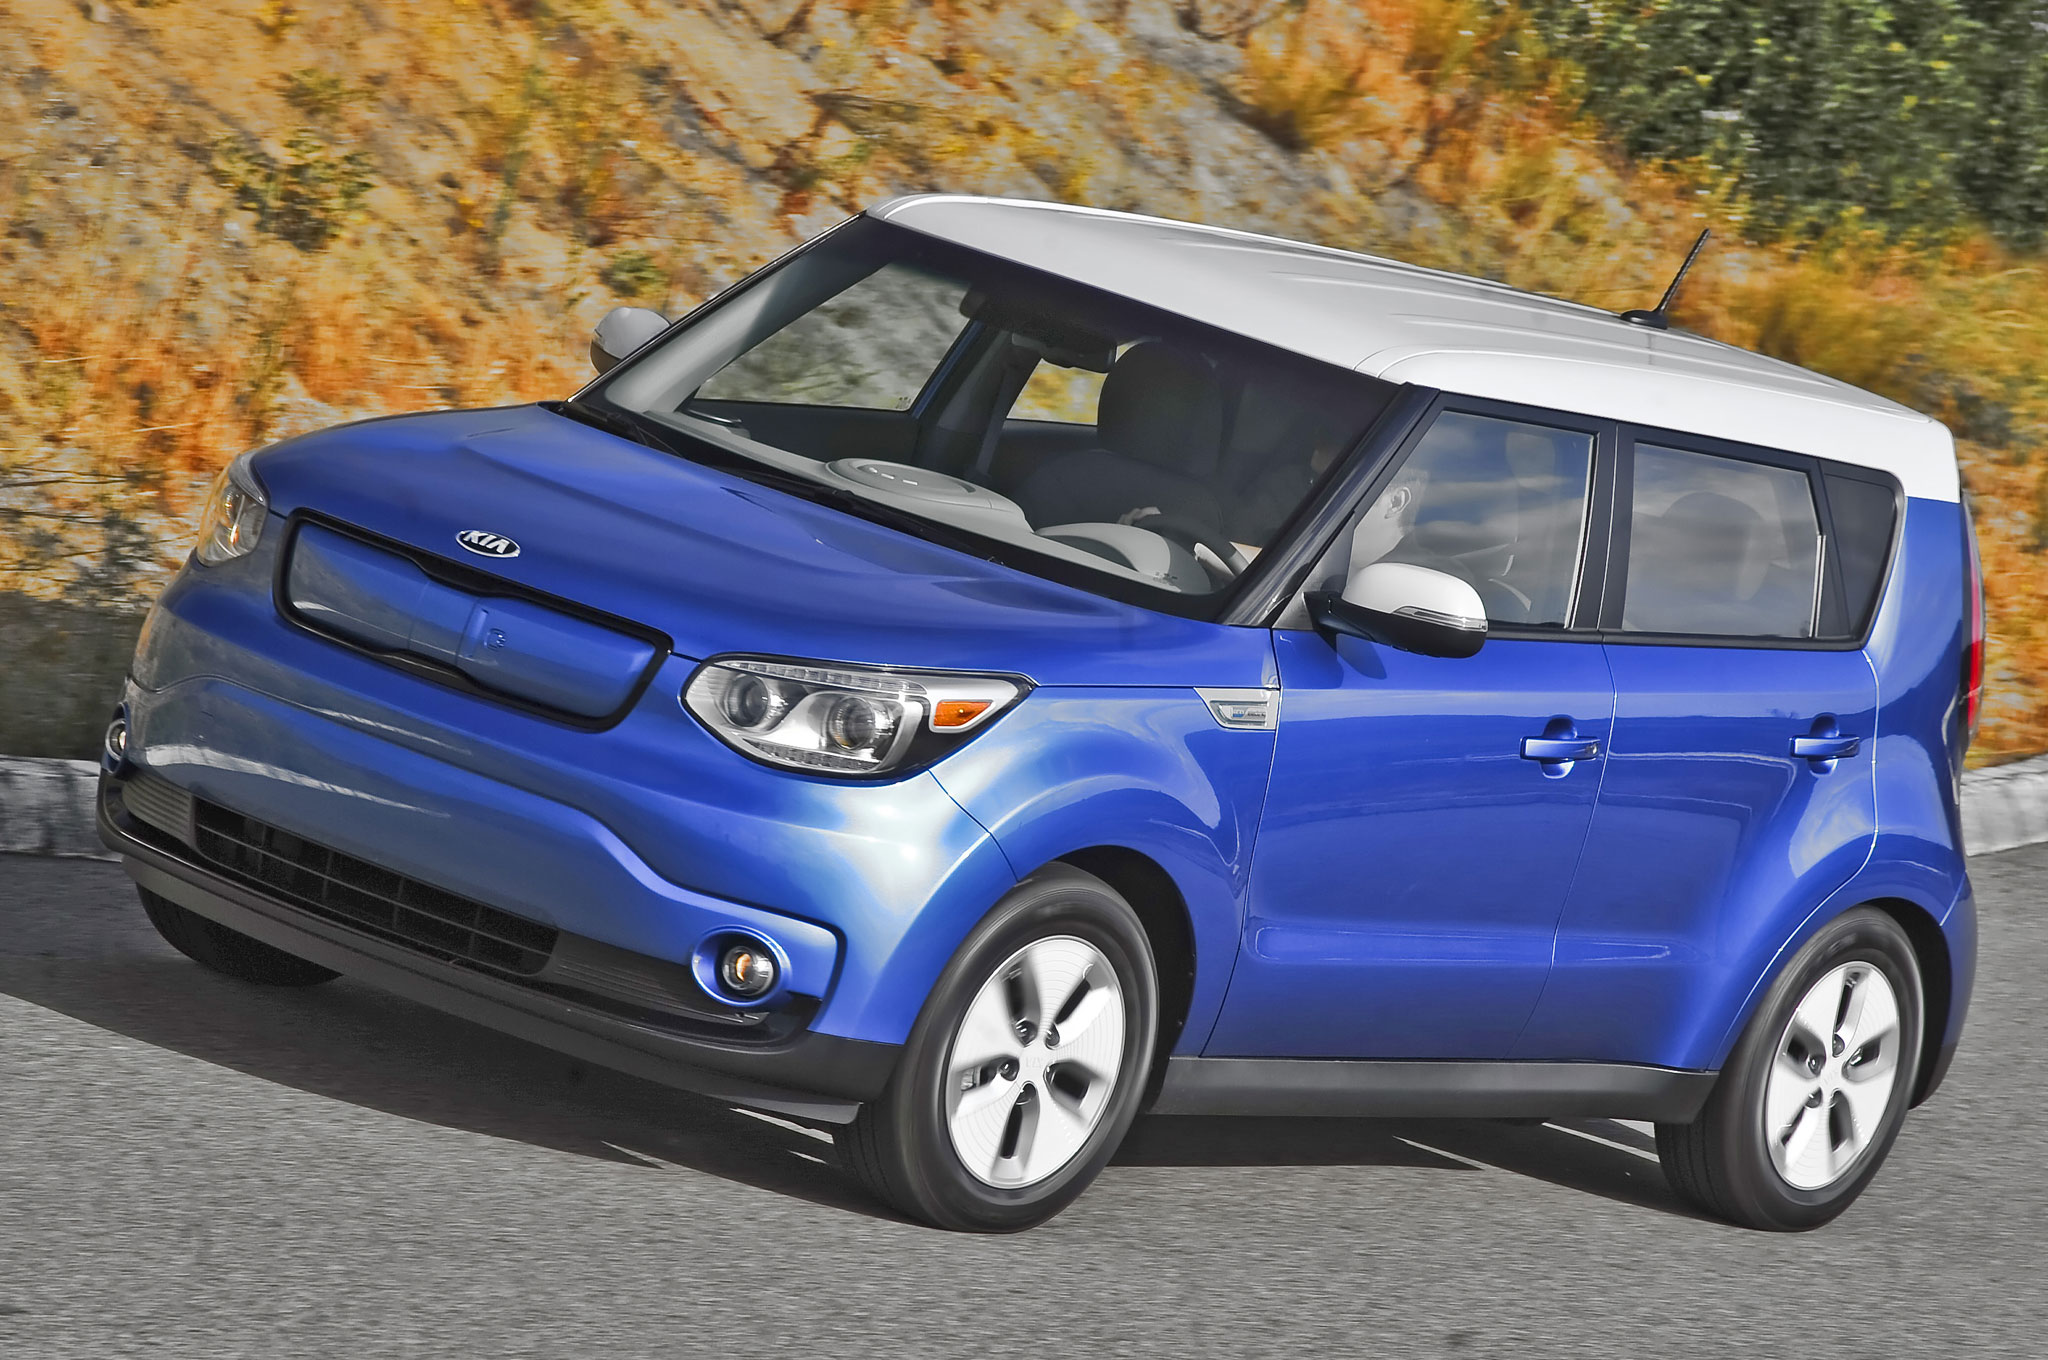 hattiesburg mississippi your courtesy motors ford vehicle inventory kia used dealer details blue at soul inc